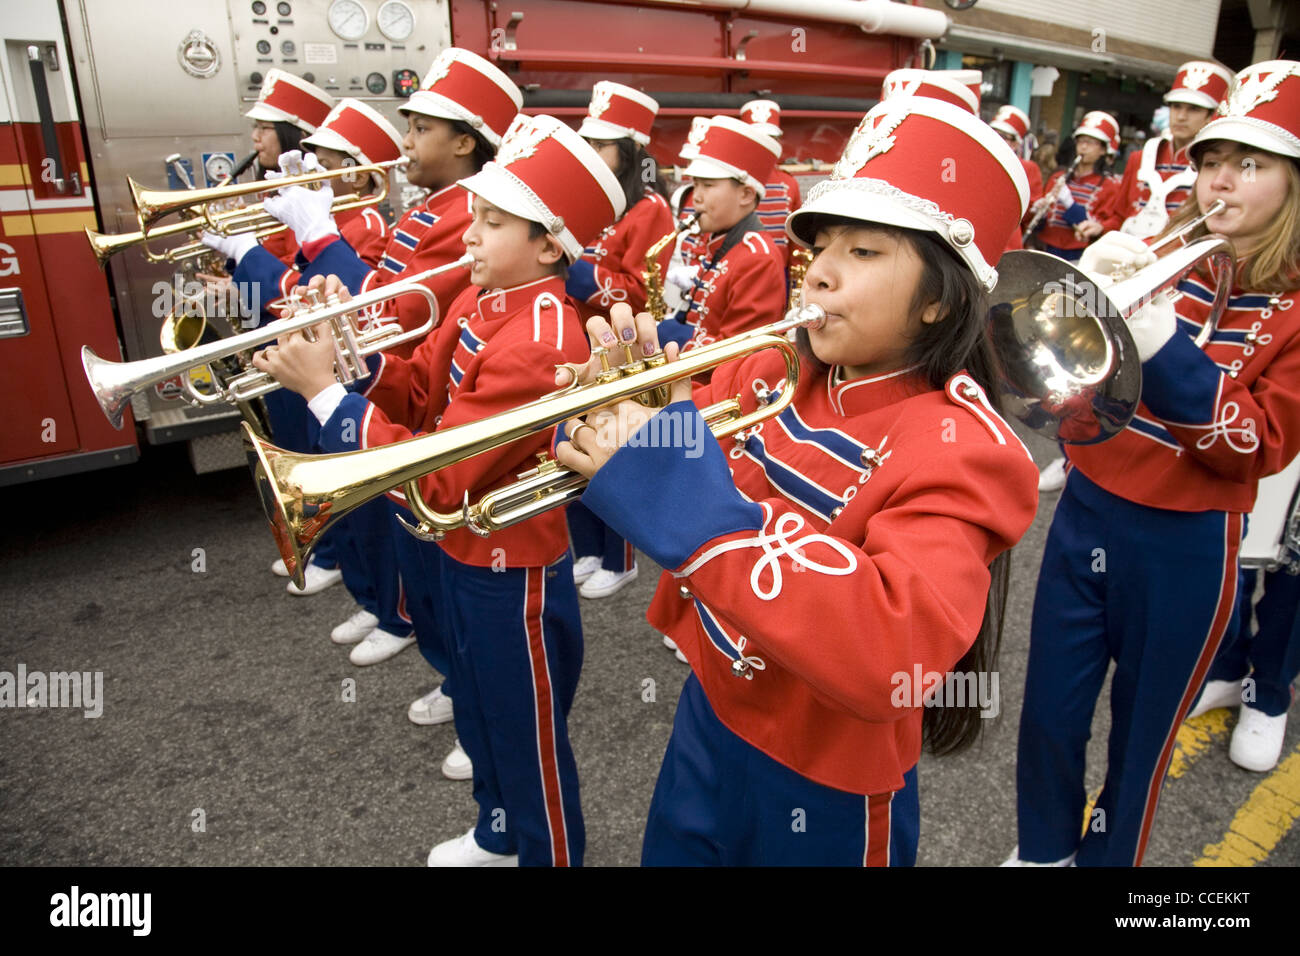 2012 Three Kings Day Parade, Brooklyn, New York. Junior high school marching band in the parade. - Stock Image